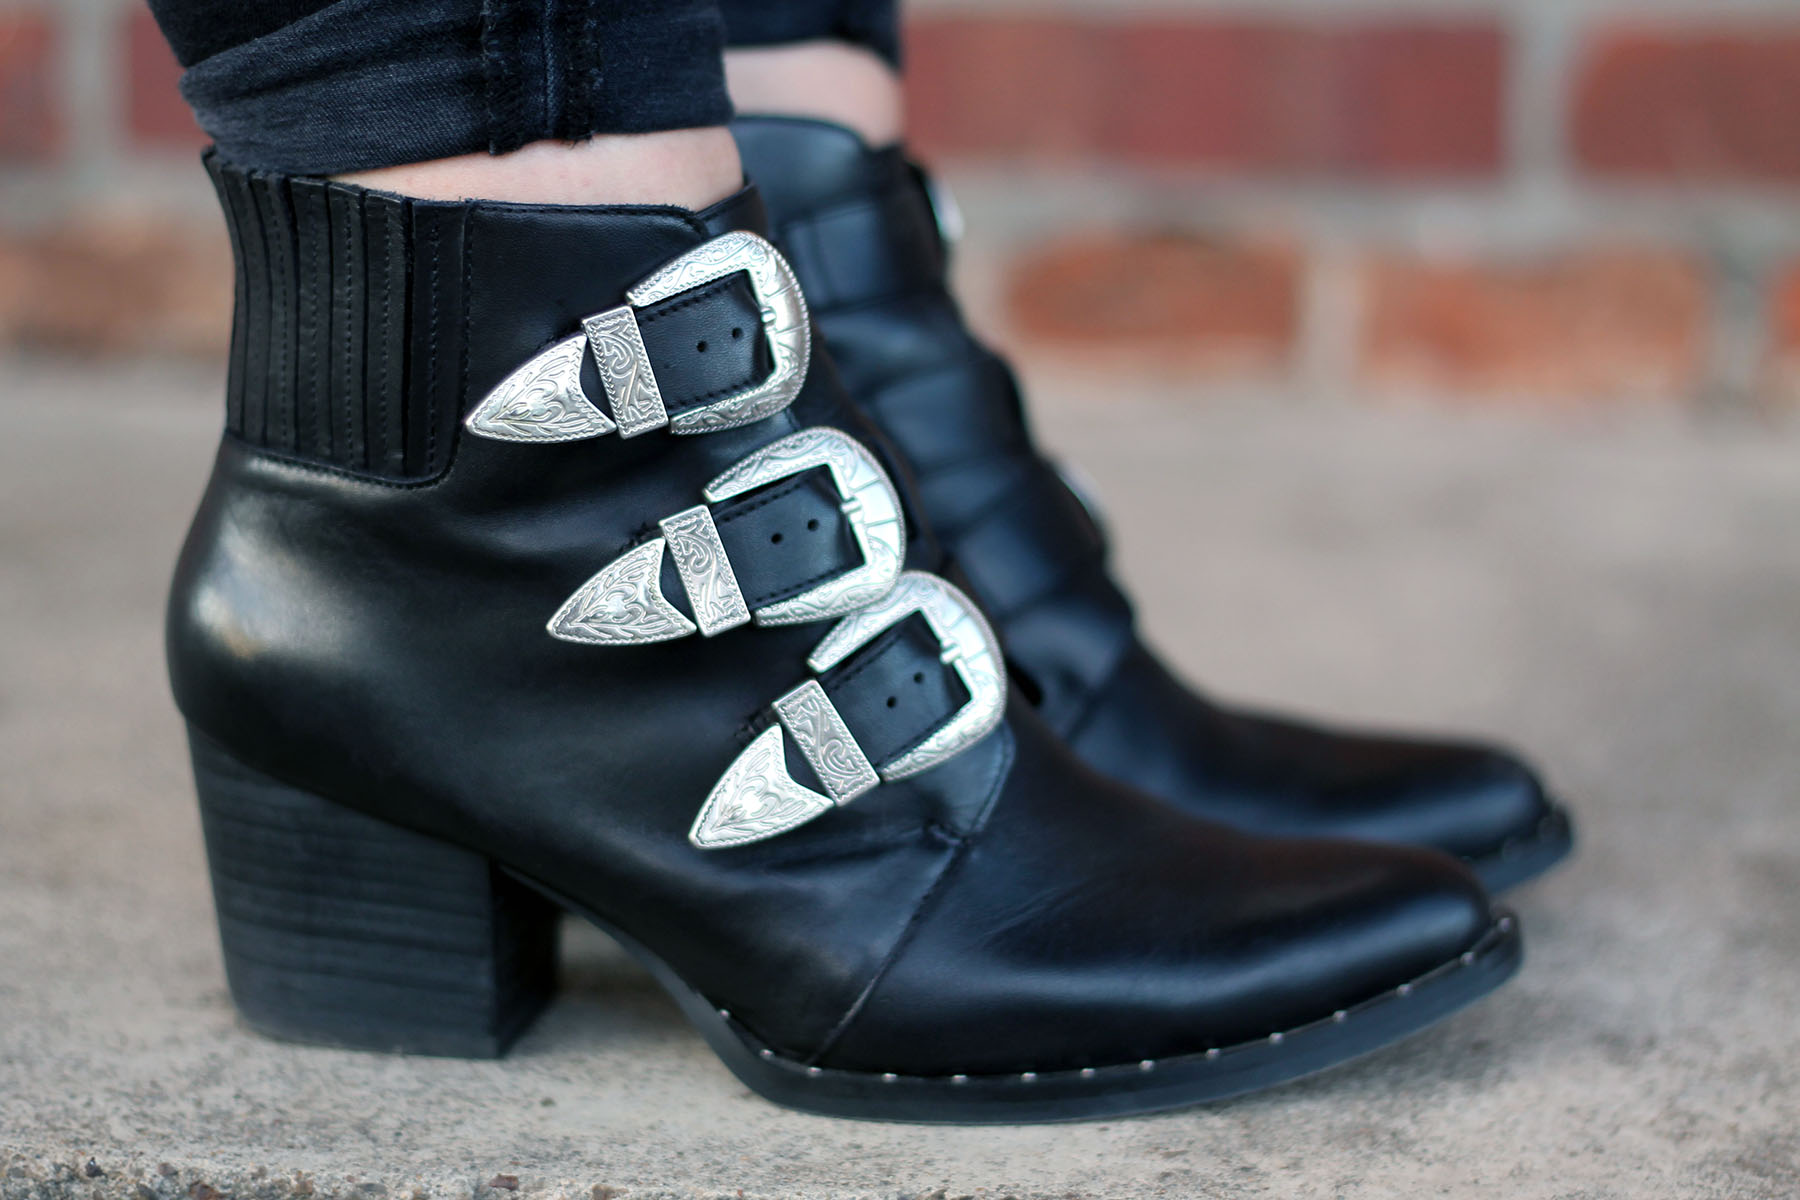 stiefeletten-asos-boots-modeblogger-fashionblogger-outfit